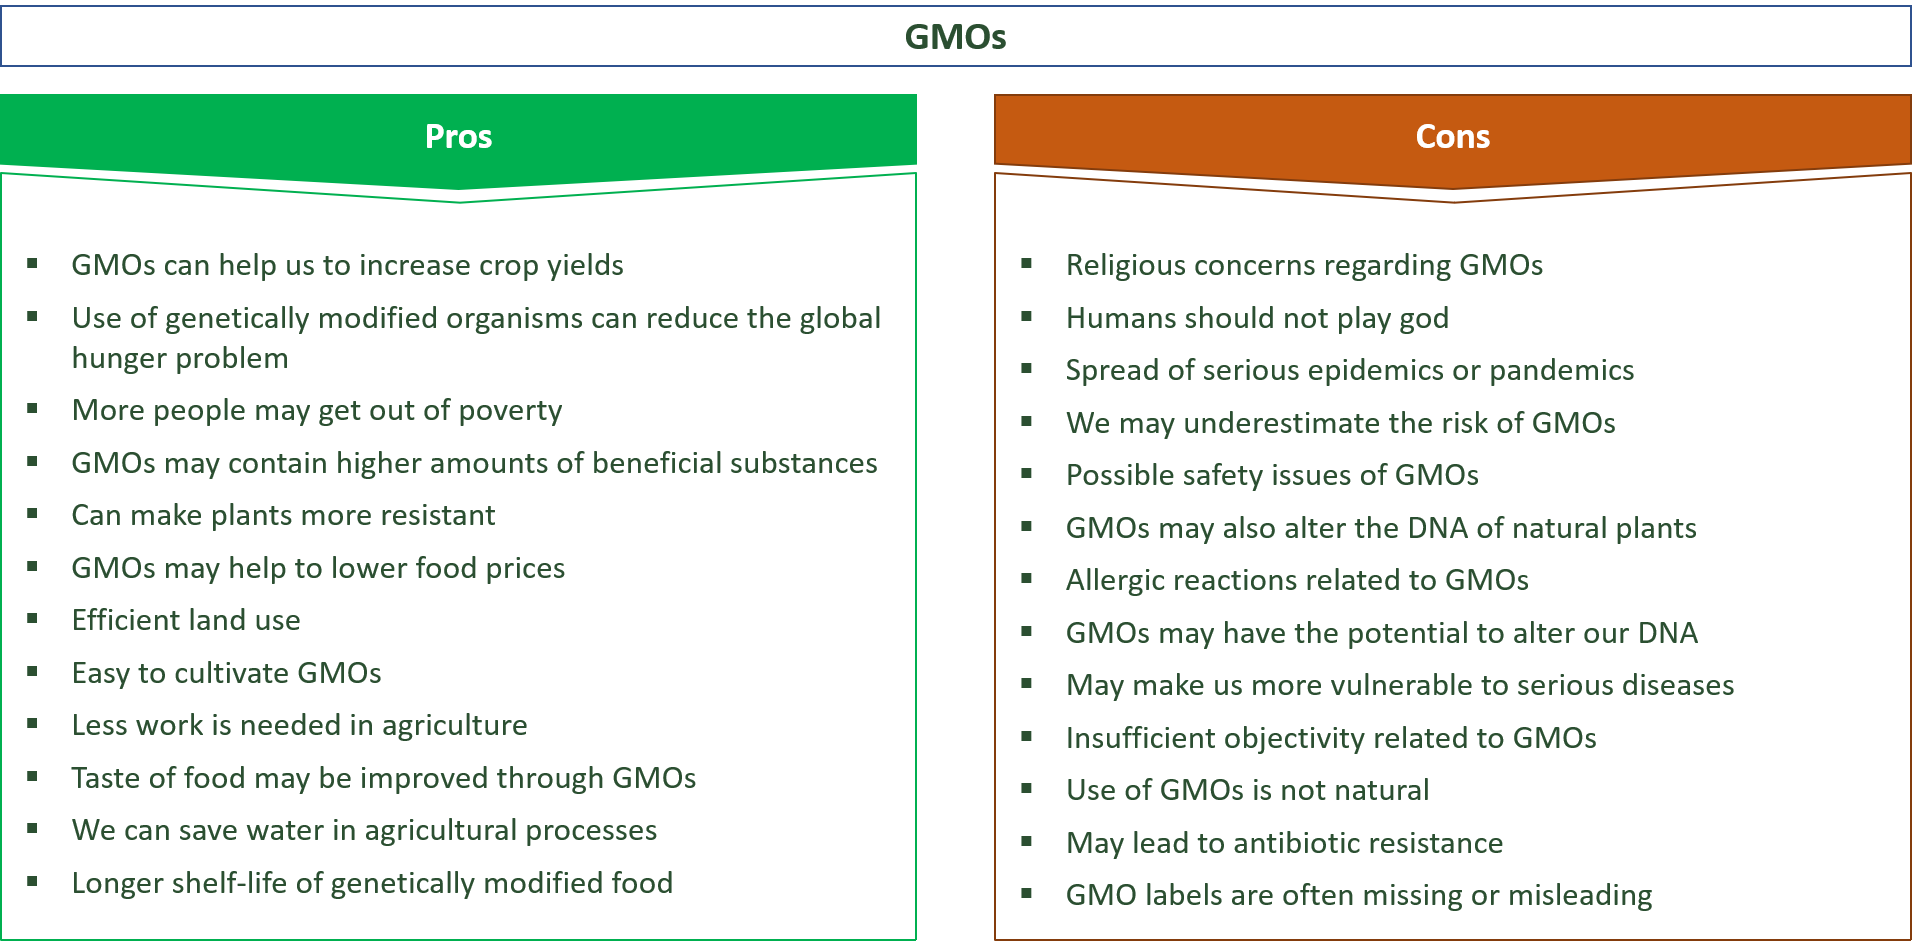 advantages and disadvantages of gmos